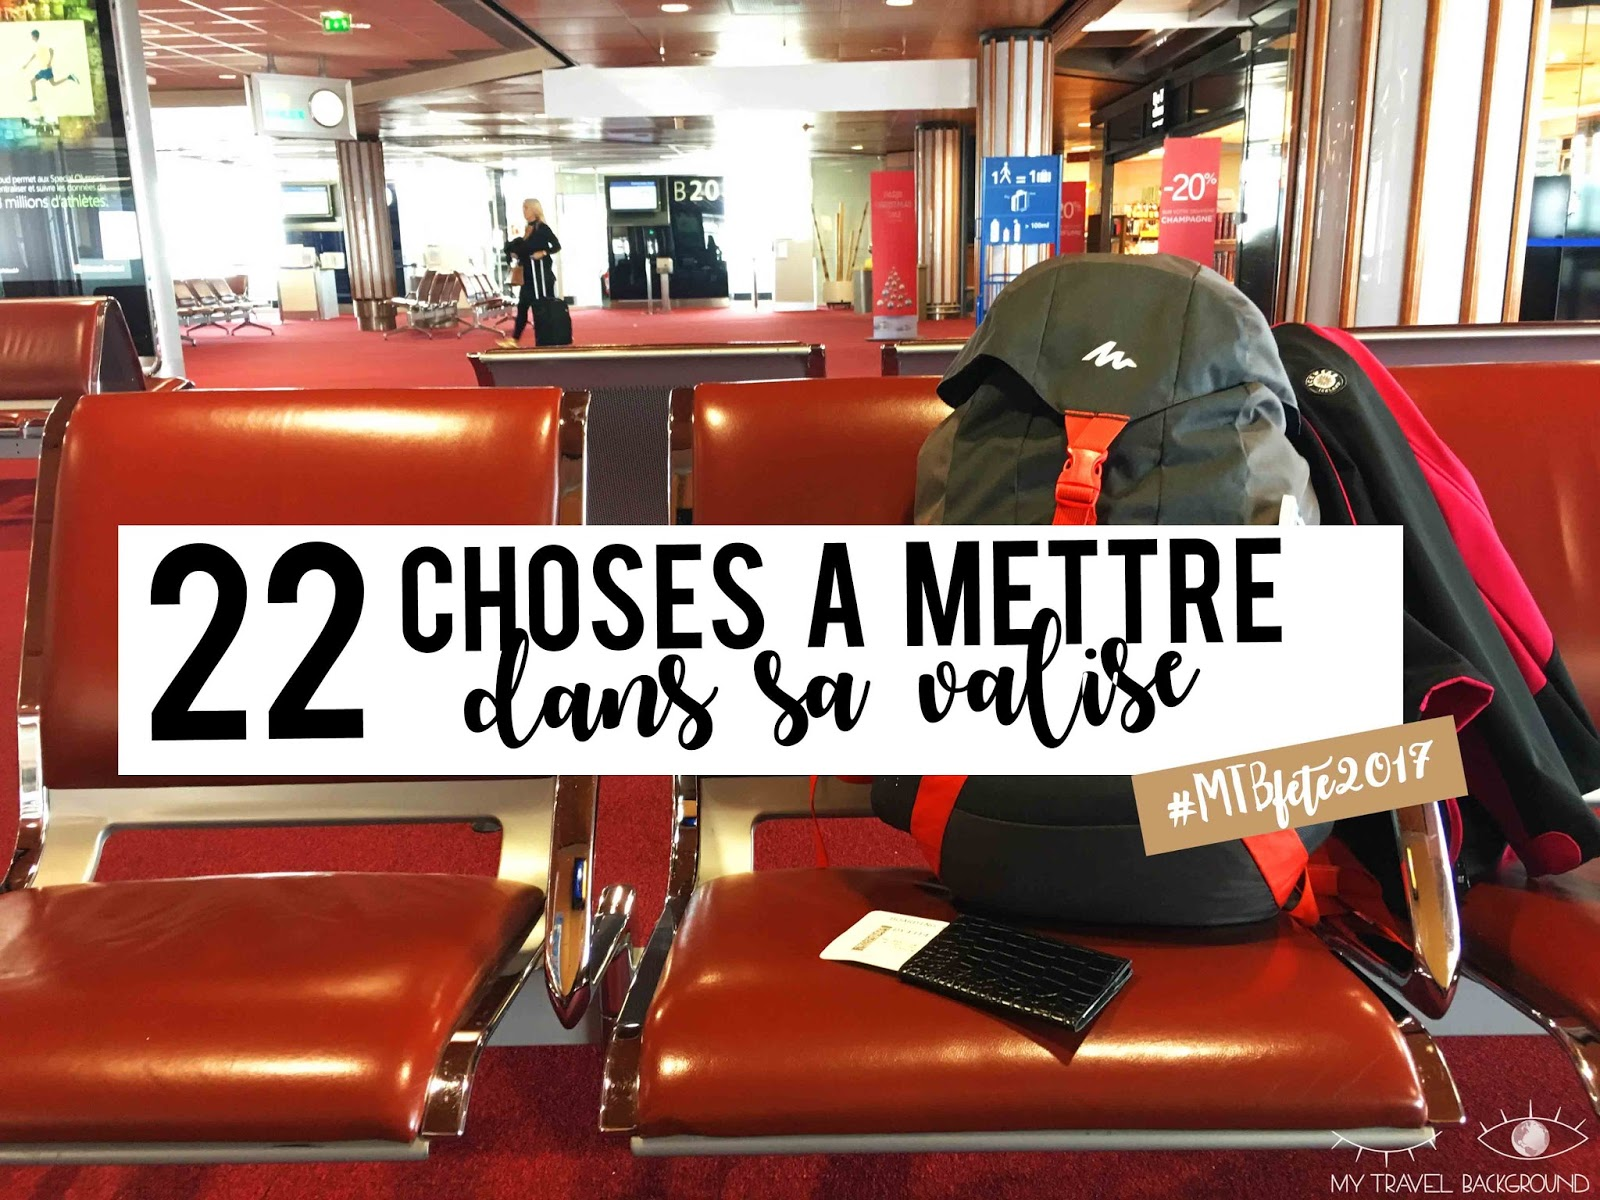 My Travel Background : 22 choses à mettre dans sa valise